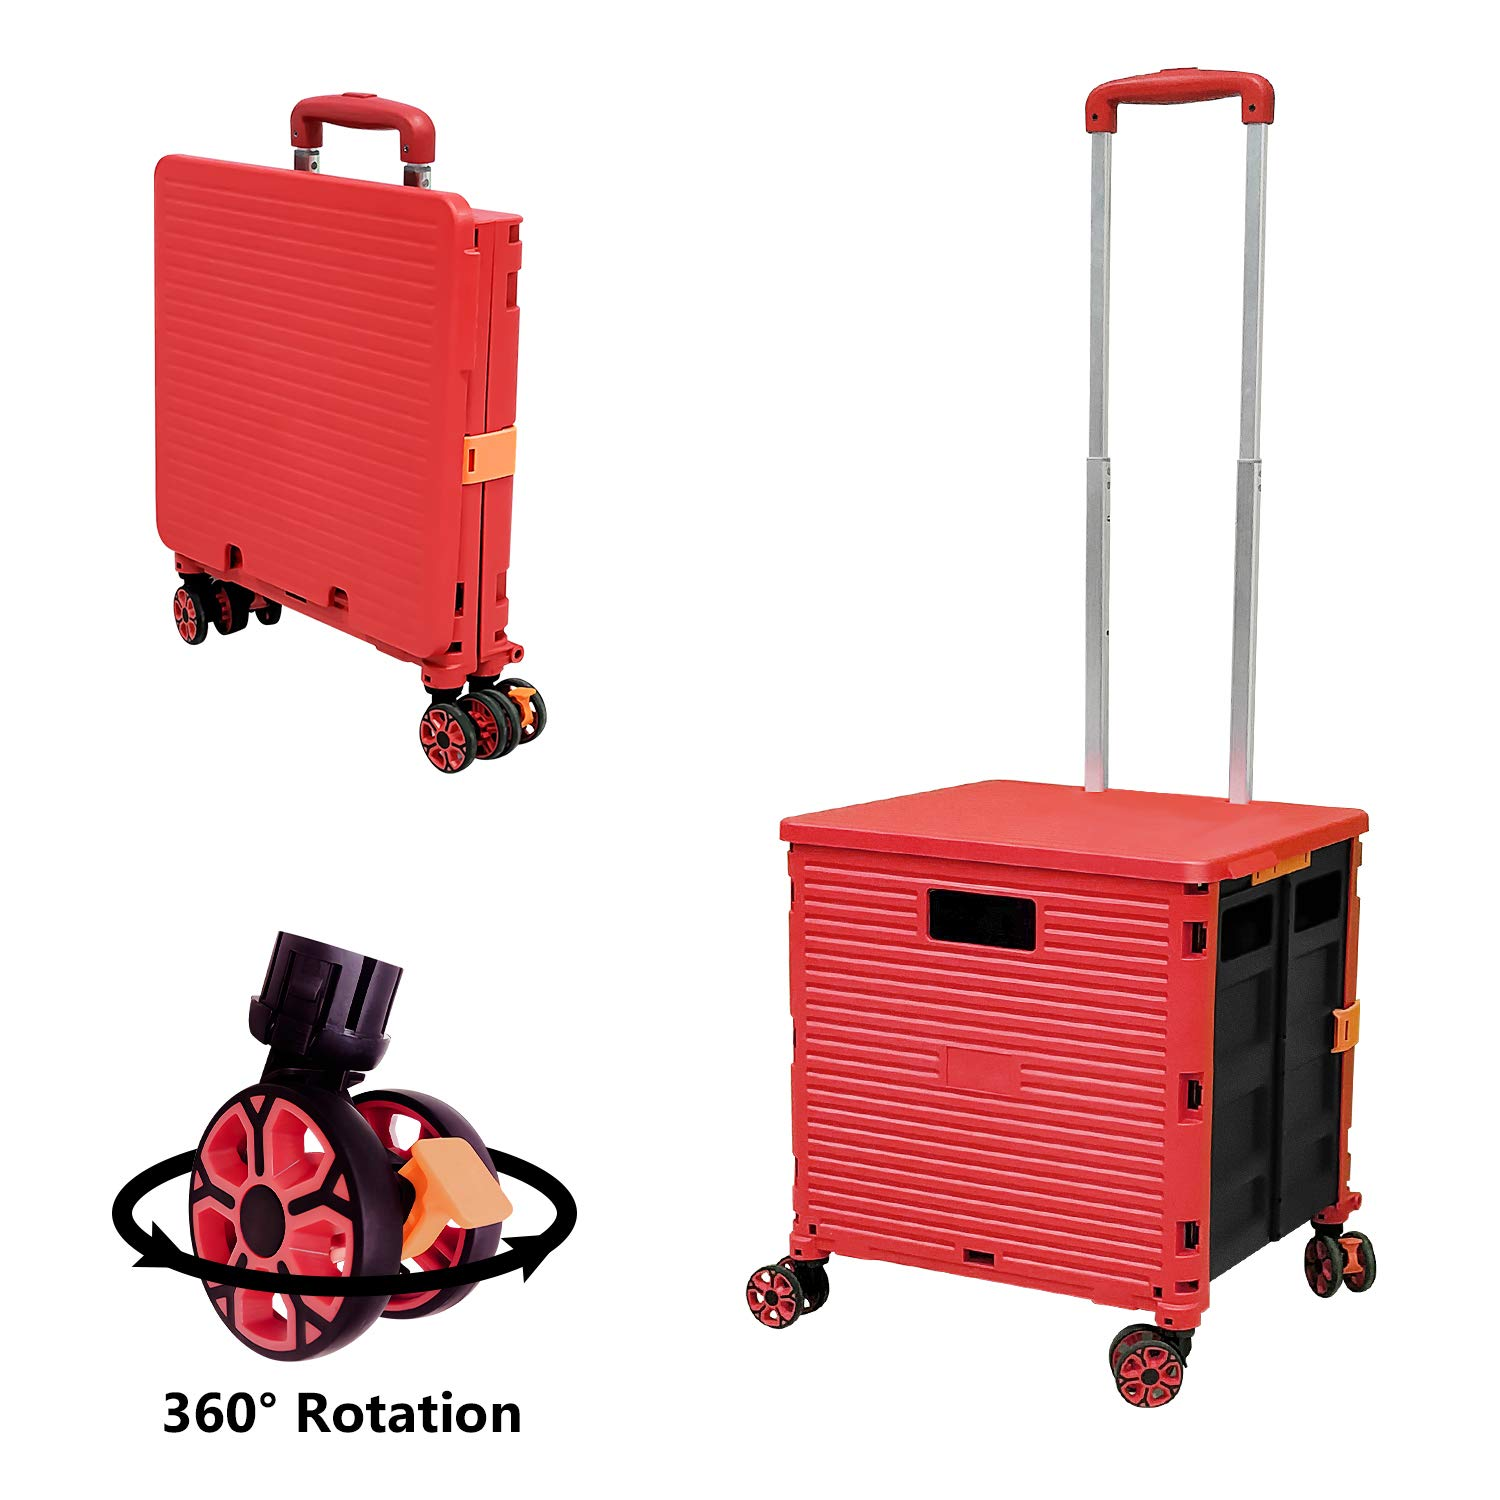 Quick Utility Cart Folding Portable Rolling Crate Handcart with Durable Heavy Duty Plastic Telescoping Handle Collapsible 4 Rotate Wheels for Travel Shopping Moving Luggage Office Use (Red)